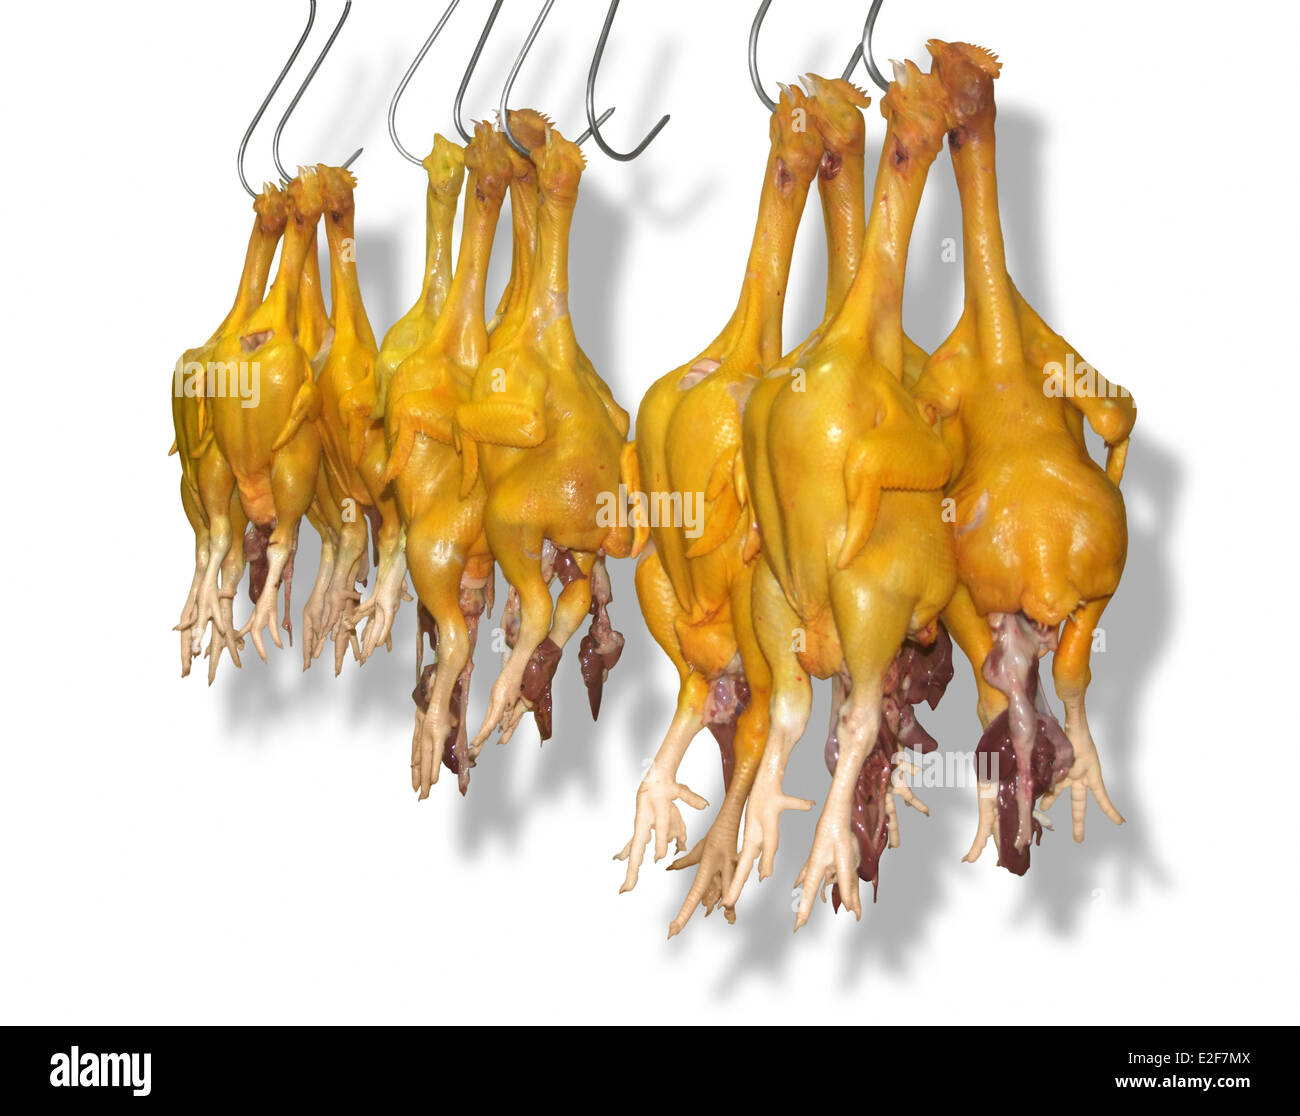 some plucked and gutted yellow chicken on hooks in front of white back with shadow - Stock Image